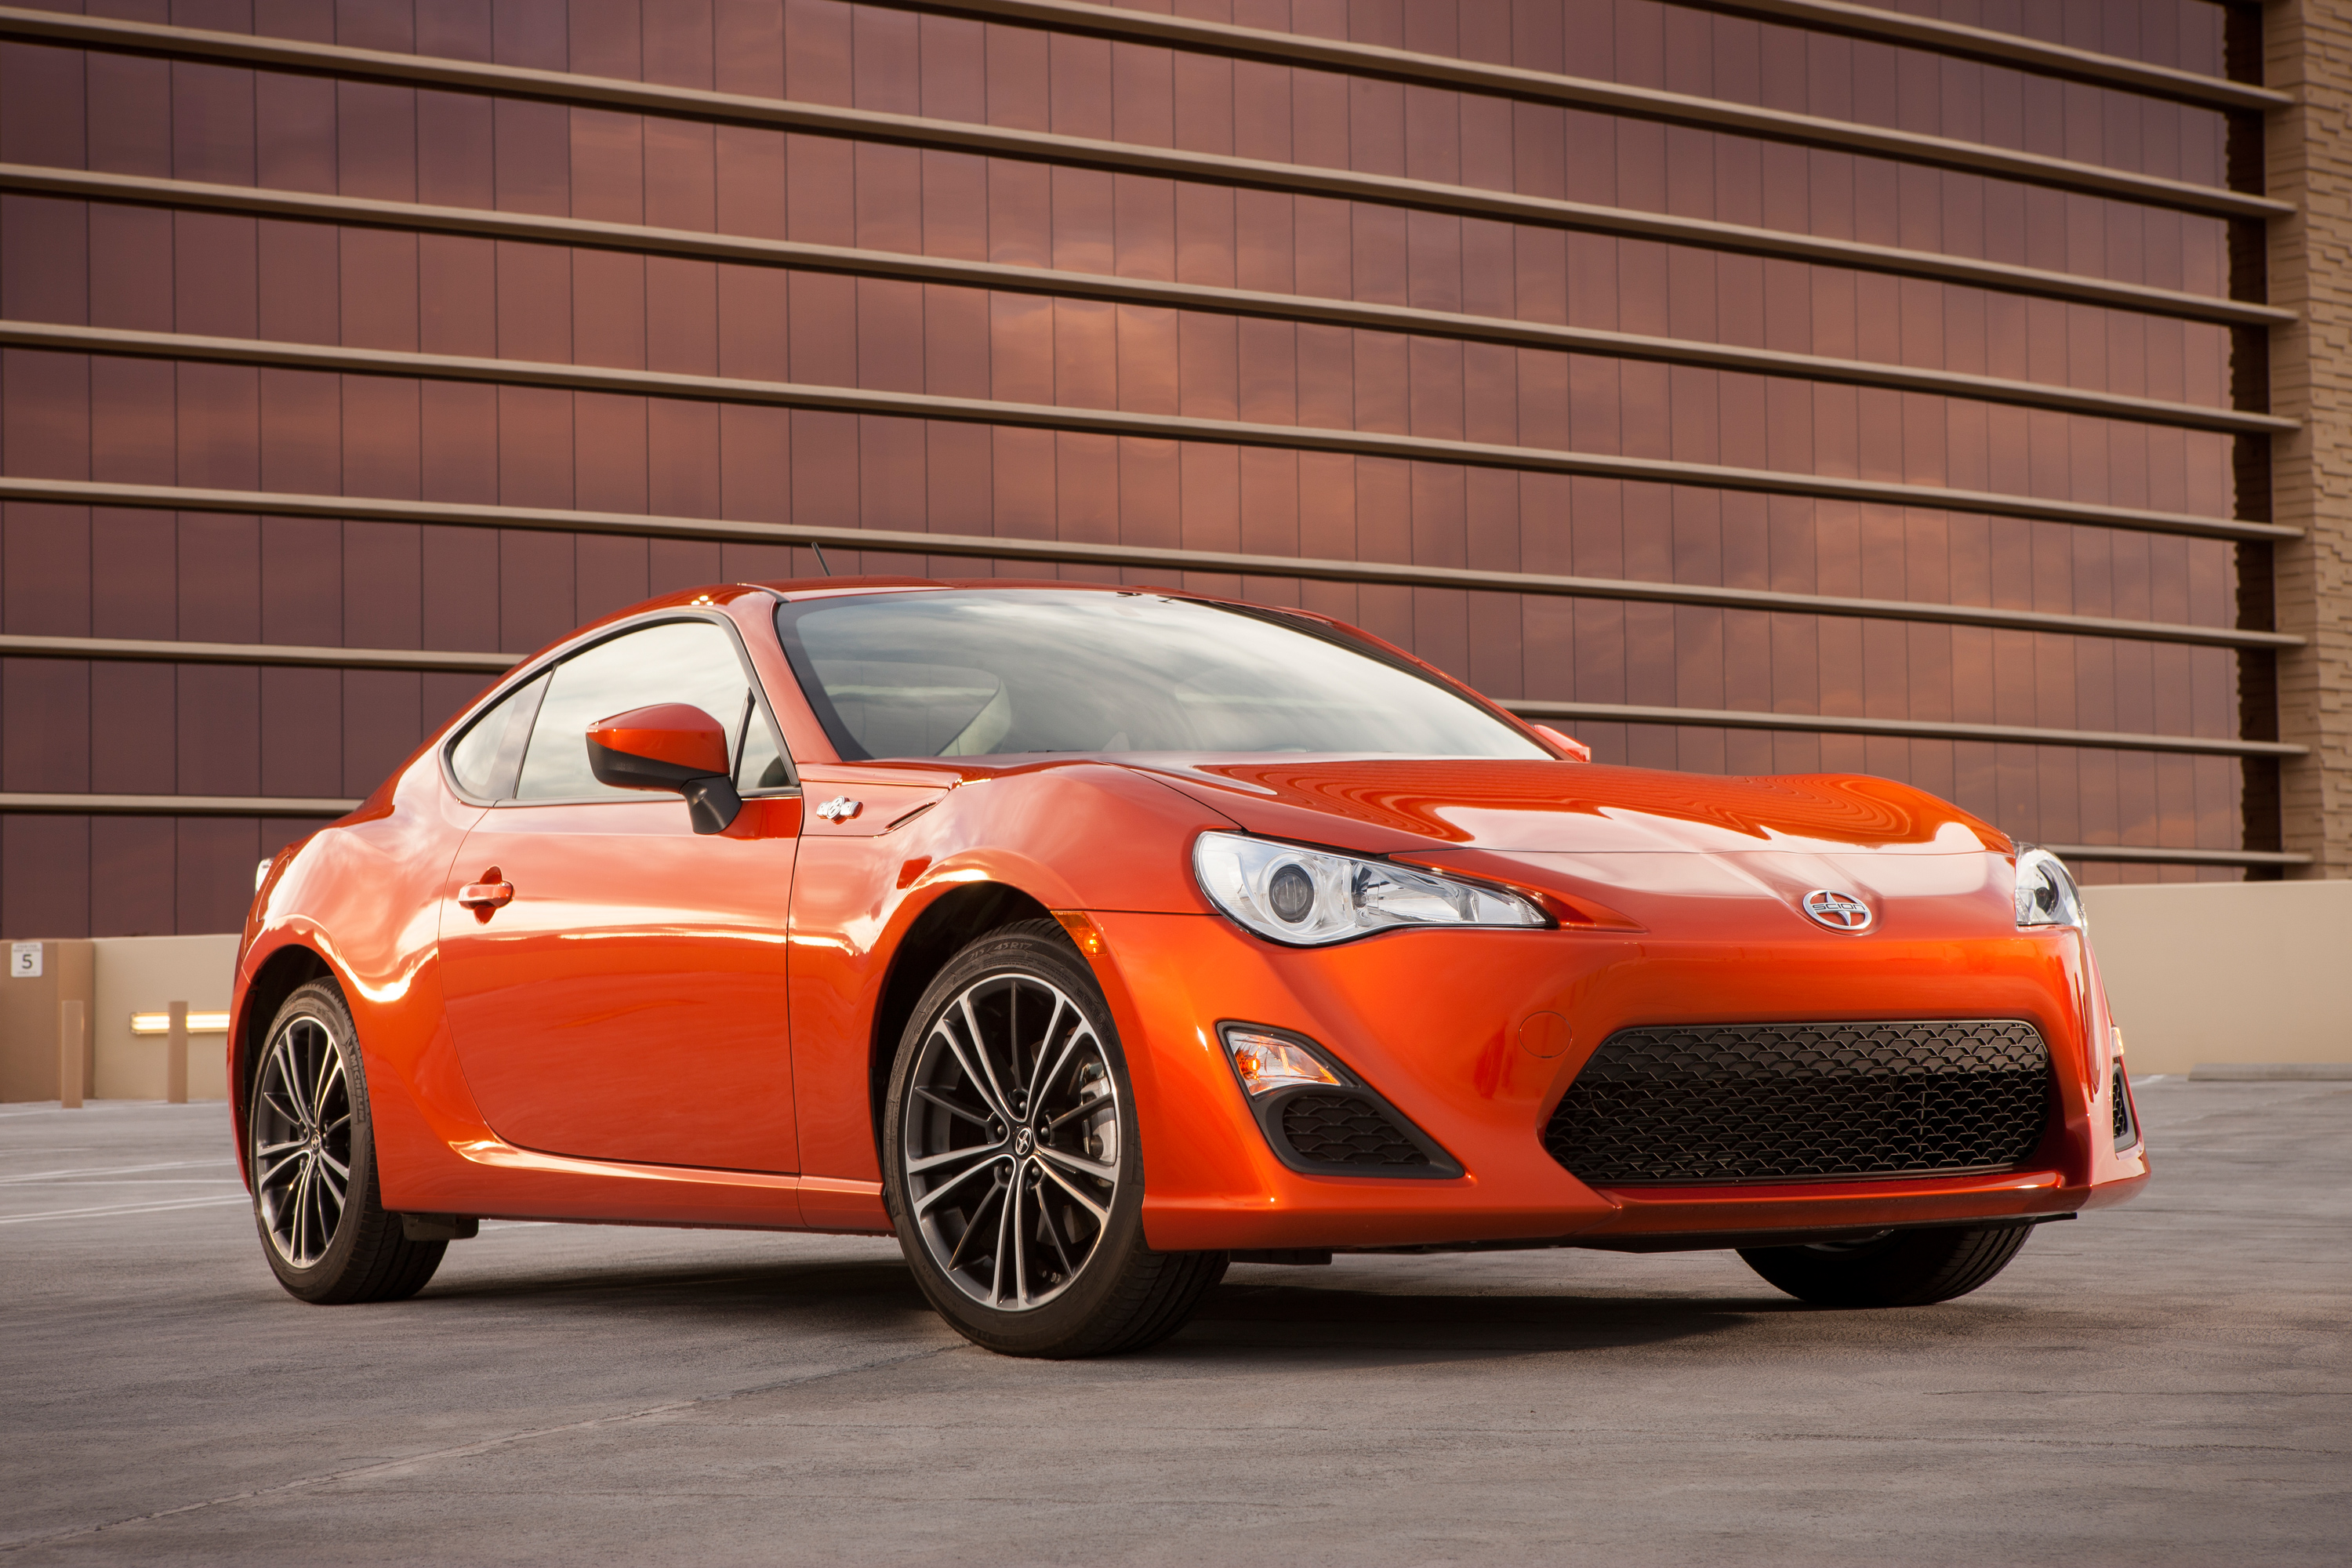 Seat Time 2014 Scion FR S – John s Journal on Autoline